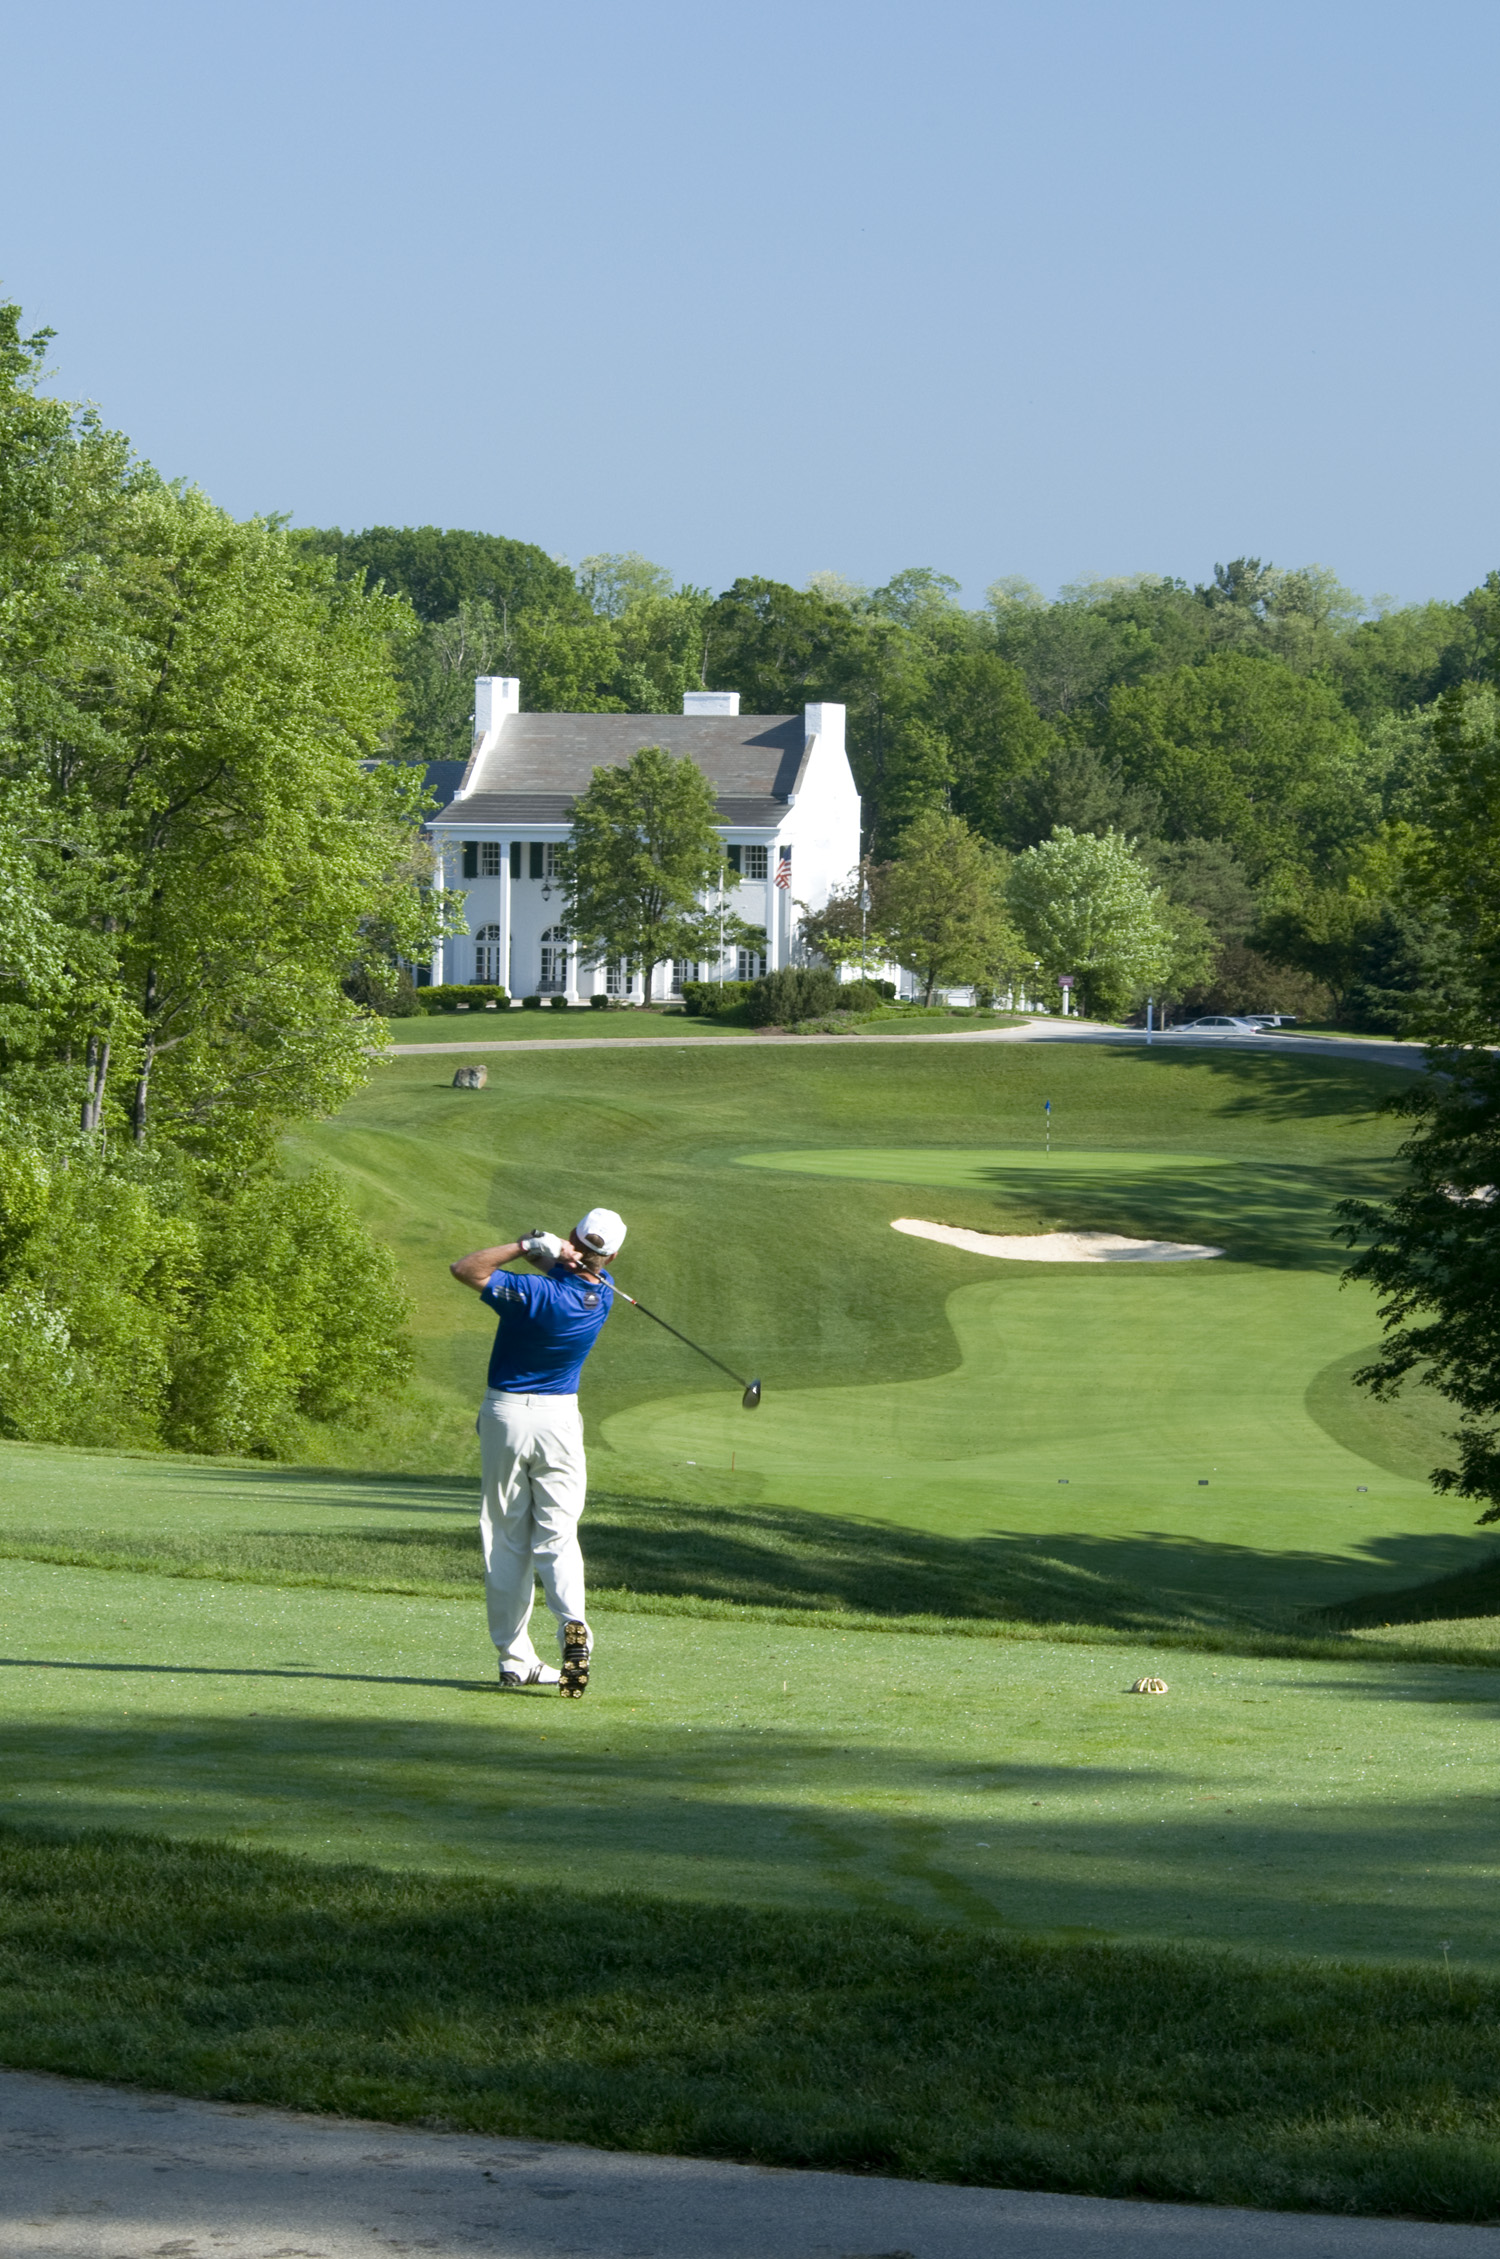 GREATER CLEVELAND AMATEUR CHAMPIONSHIP NOW INCLUDED IN WORLD AMATEUR GOLF RANKING